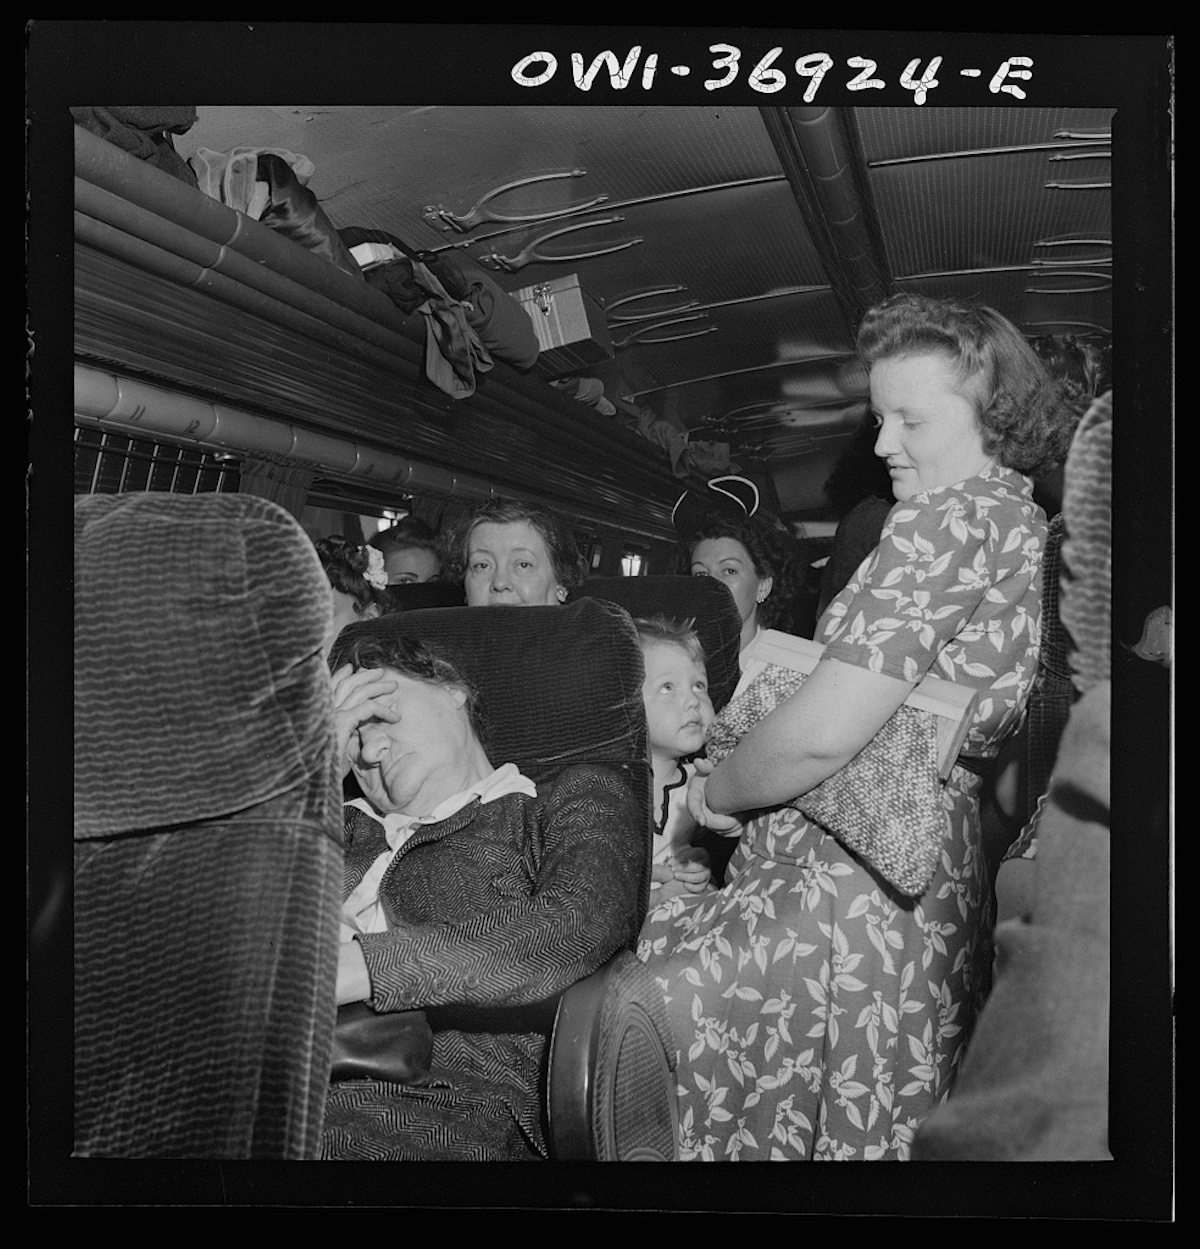 Passengers on the Greyhound bus going from Washington, D.C. to Pittsburgh, Pennsylvania, some of which were standing all the way